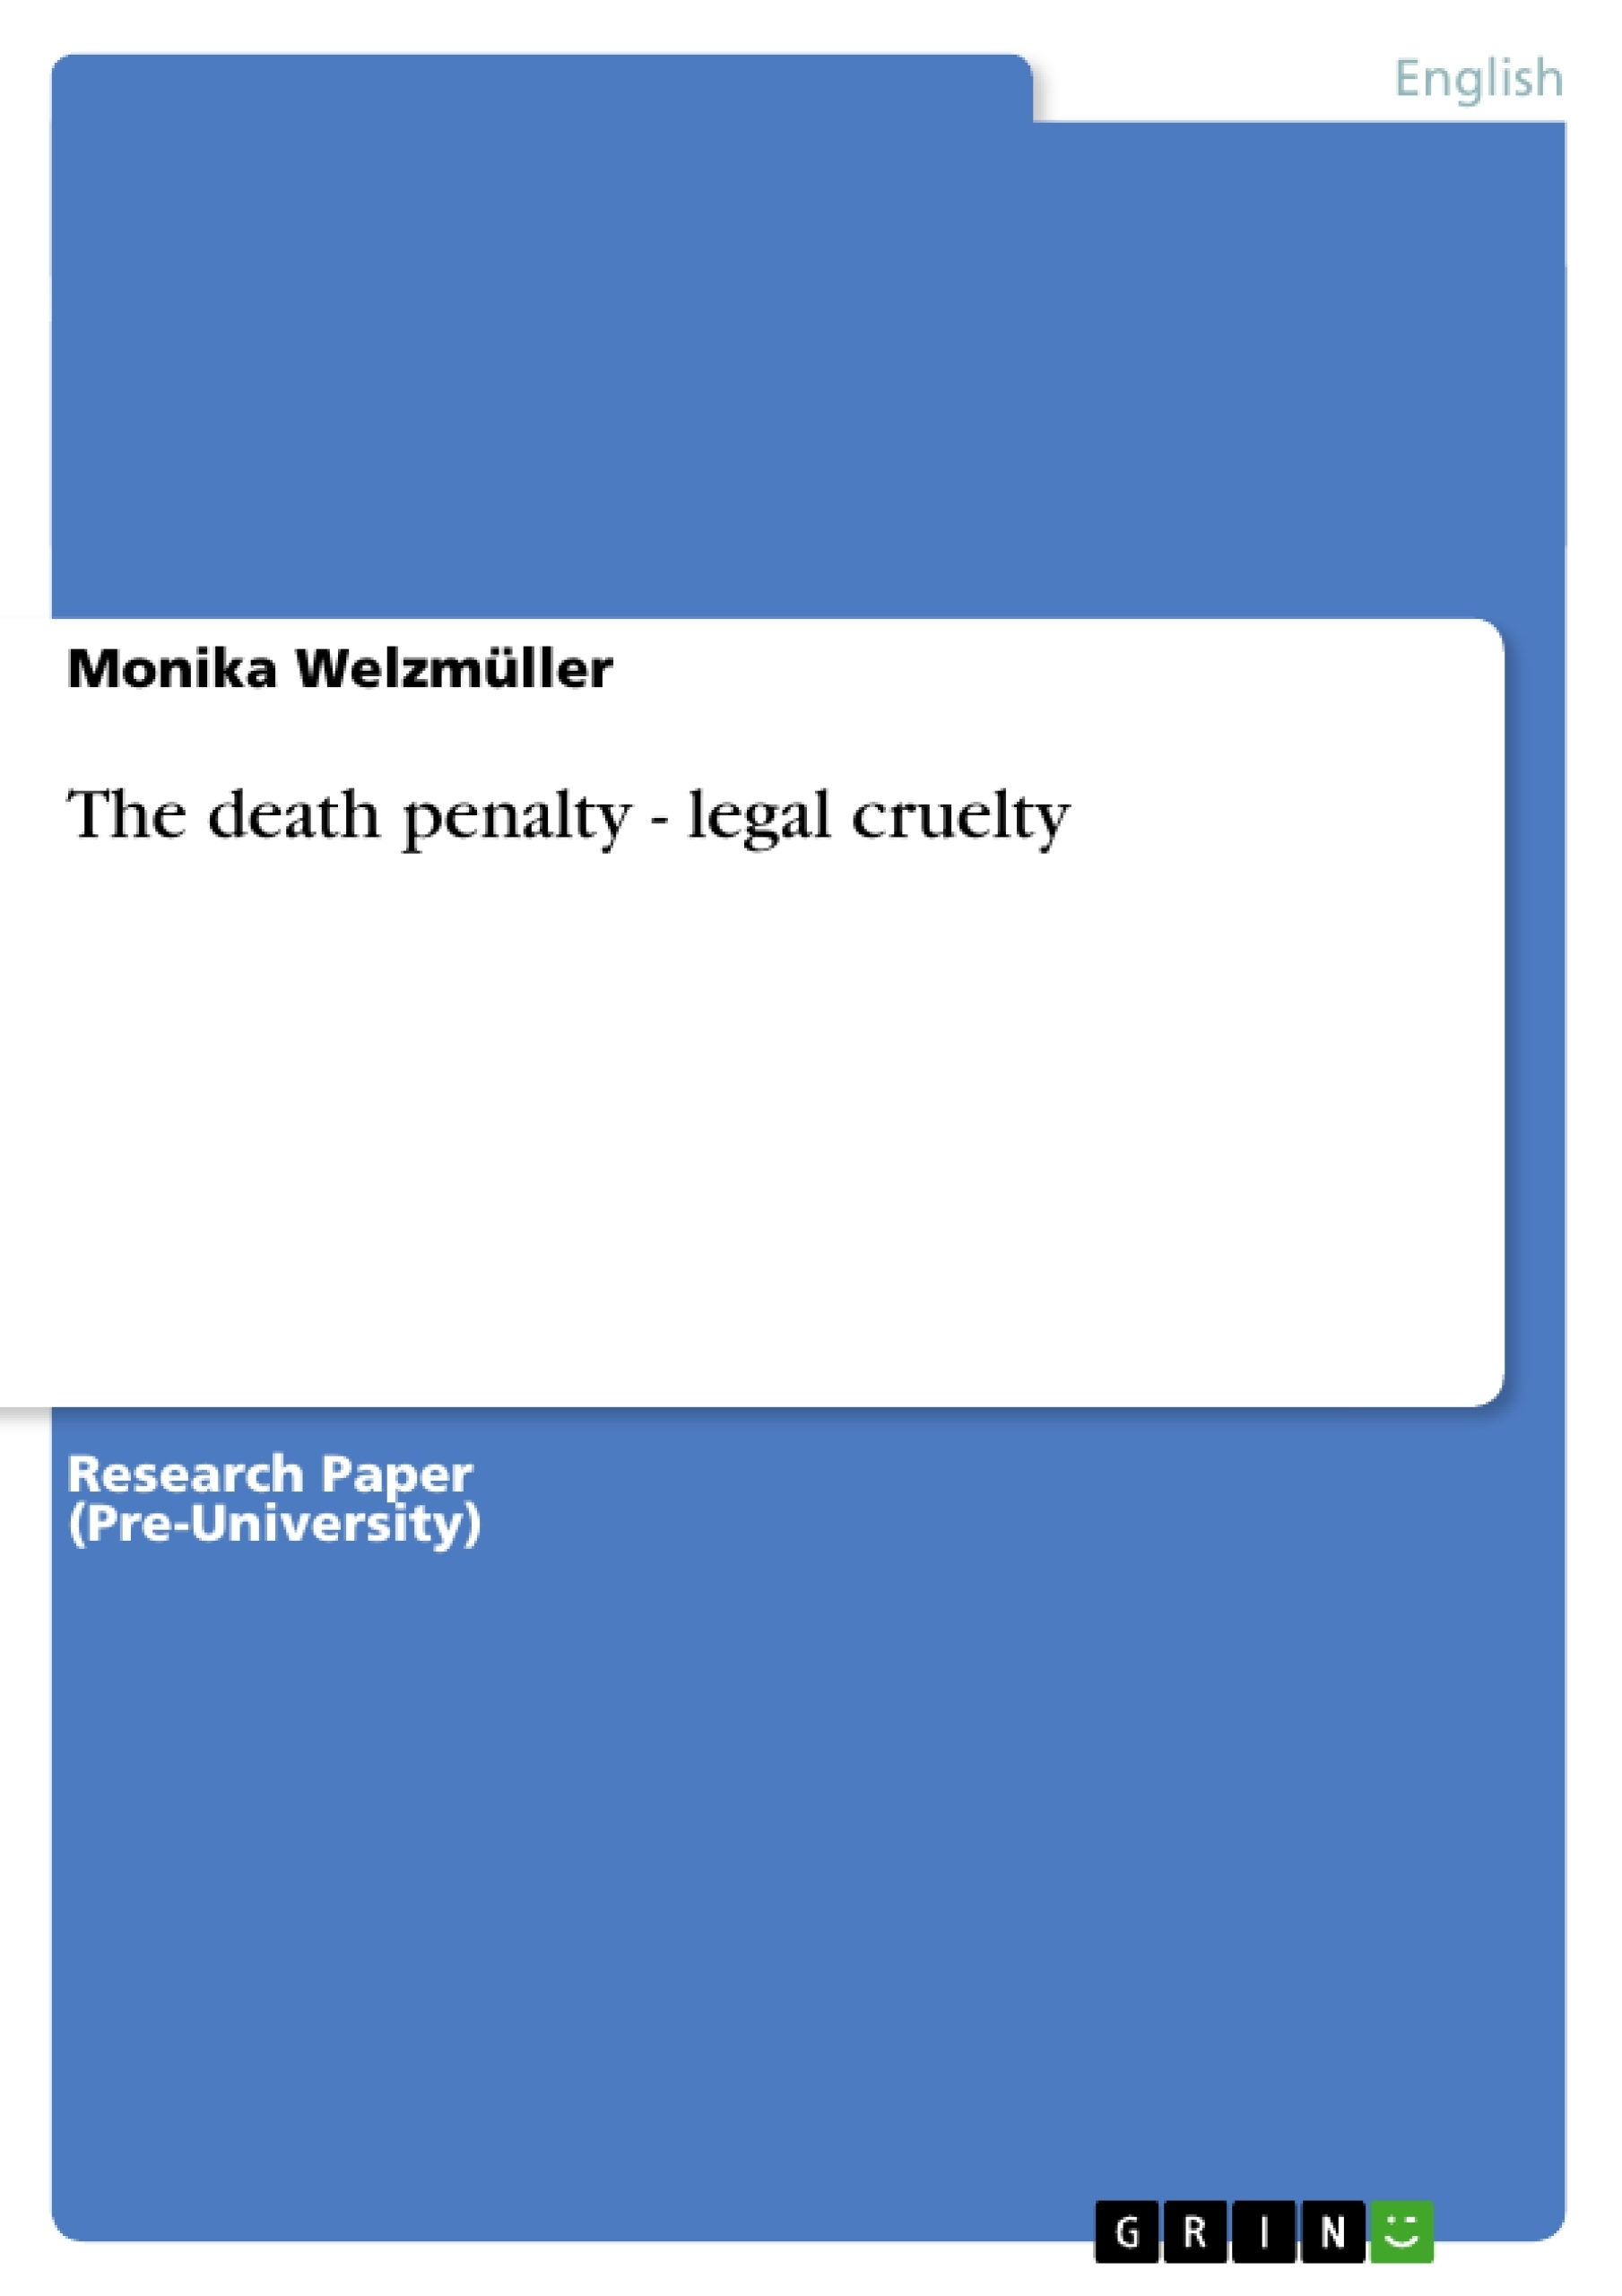 an analysis and the pros and cons of the death penalty in todays society Death penalty today, compared to 25 years ago, rely less on such  society of  criminology, the academy of criminal justice sciences, and the law  most of  these analyses conclude that for crimes that are comparable, the death  until a  decade ago, the pro–death penalty literature  for example, con.